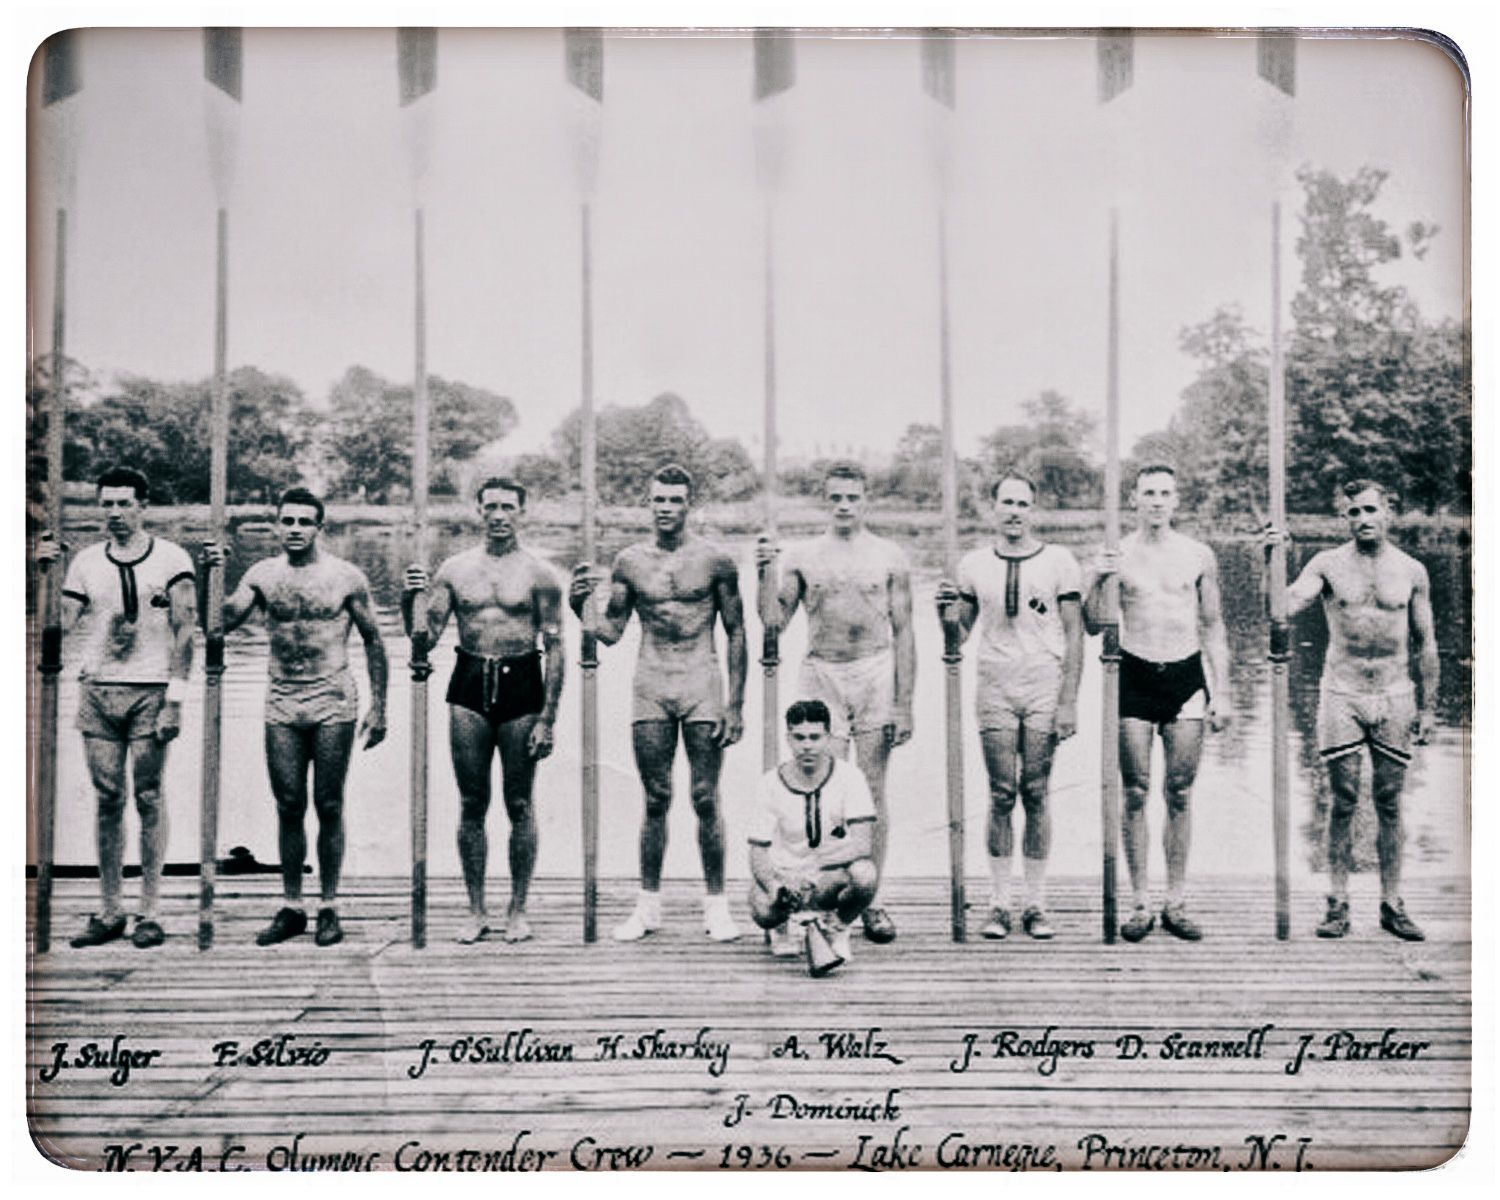 New York Athletic Club Olympic Contender Crew 1936